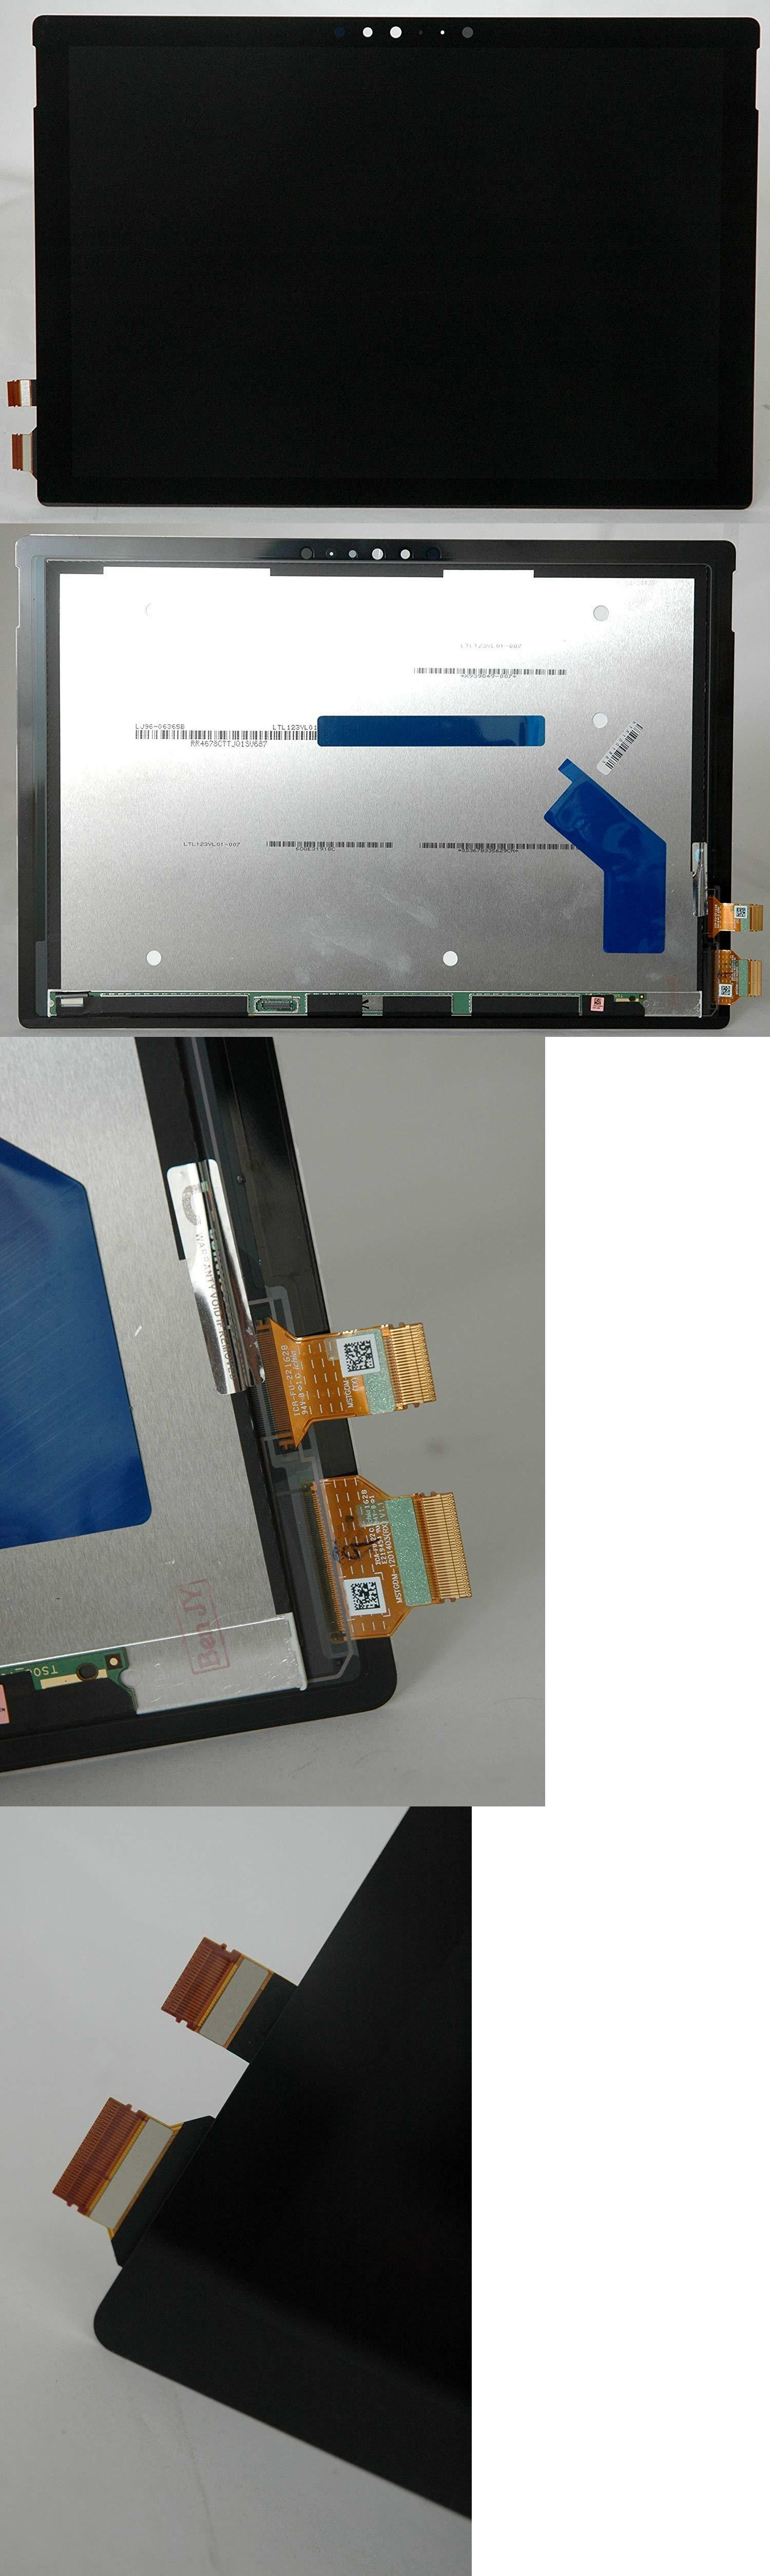 Laptop Screens and LCD Panels 31569: Microsoft Surface Pro 4 1724